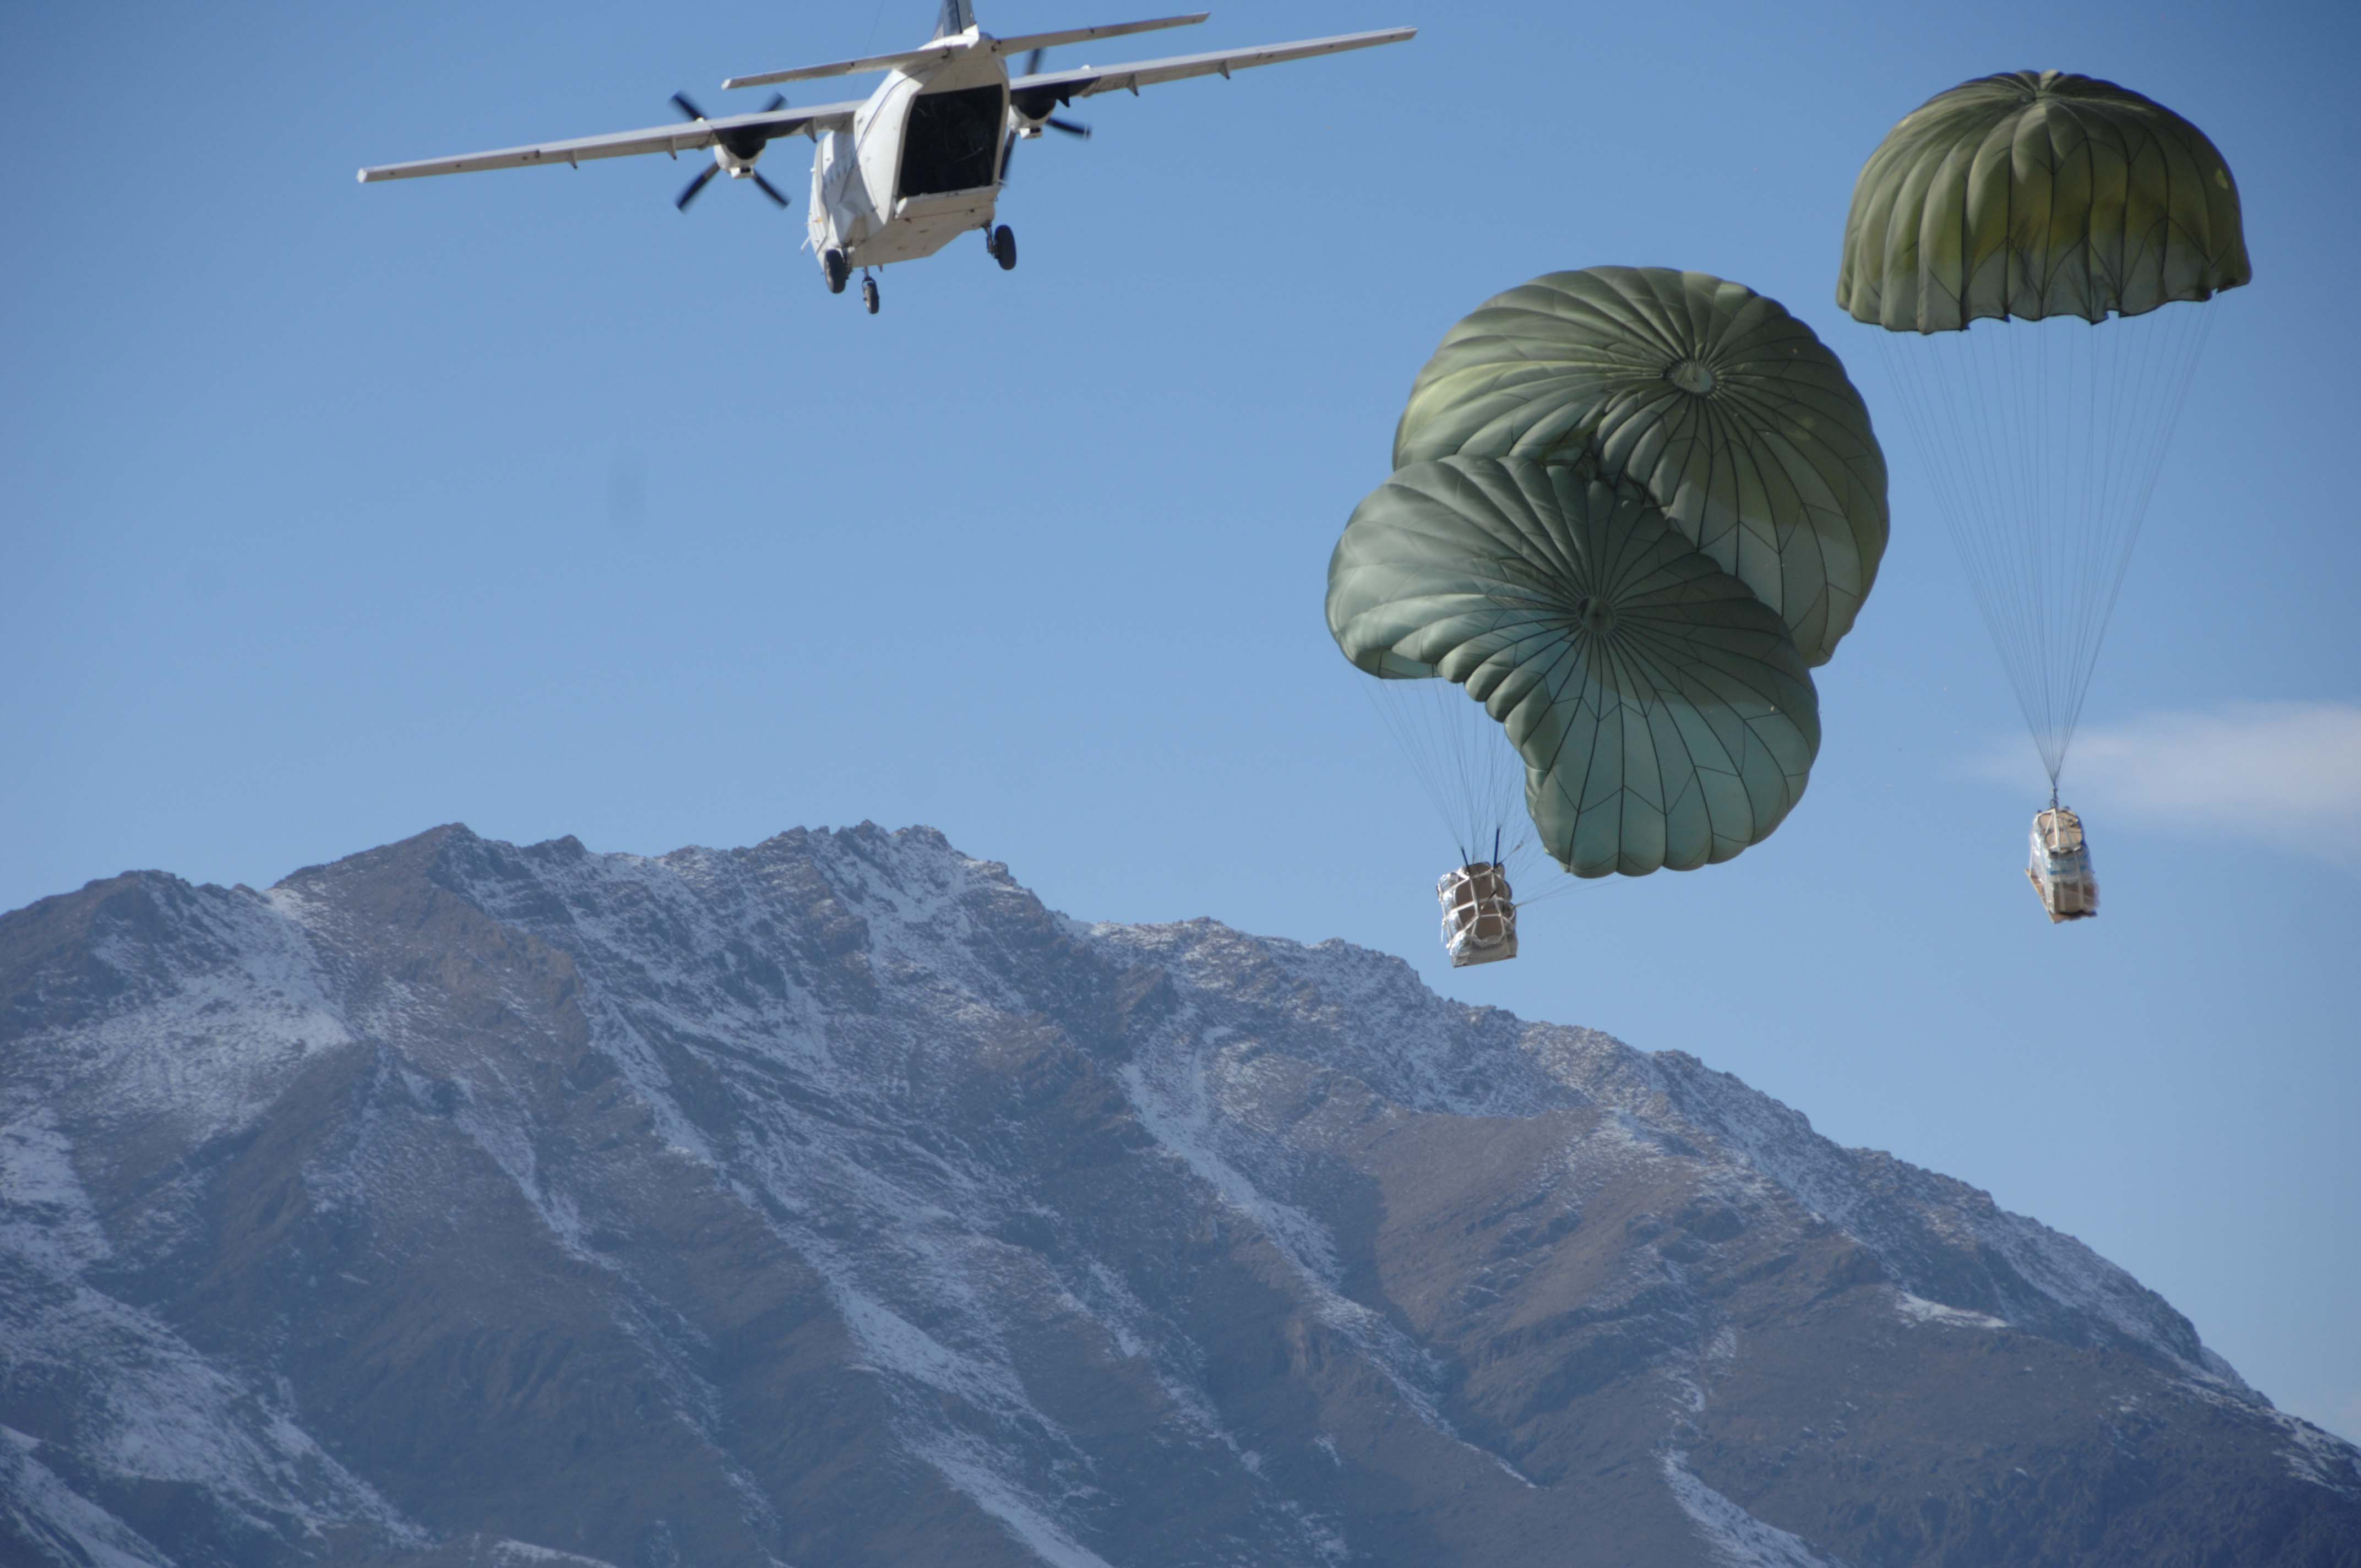 In the vacinity of Kabul, Afghanistan U.S. Coalition forces test a new delivery system for getting Class I, III, and V items to troops on the ground for extended missions; via smaller parachute bundles. U.S. Army photo by SPC John P. Ledington